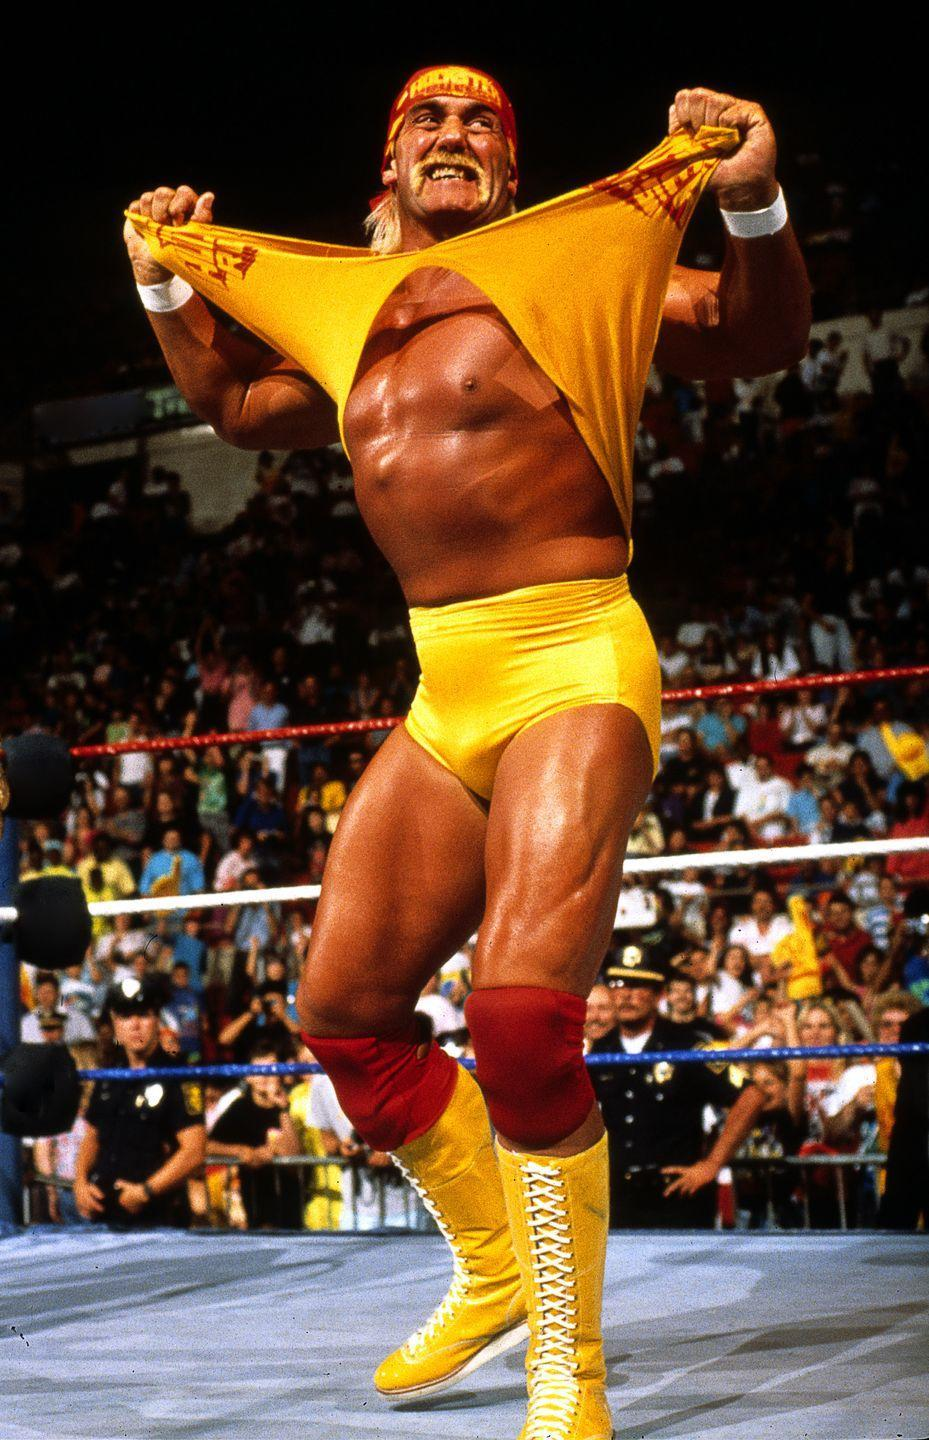 "<p>I don't want to see Hulk Hogan back in the WWE. You don't want to see Hulk Hogan back in the WWE. Even if we could leave aside his <a href=""https://www.digitalspy.com/showbiz/wwe/news/a673756/hulk-hogan-says-that-wwe-sacking-him-was-best-for-business-after-his-racist-comments/"" rel=""nofollow noopener"" target=""_blank"" data-ylk=""slk:unacceptable racist comments"" class=""link rapid-noclick-resp"">unacceptable racist comments</a> (we can't), Hogan is 67 (SIXTY-SEVEN! That's long past ""Will you still need me, will you still feed me"" age).</p><p>His ego has bulldozed its way through countless promotions in the twilight of his career, and there isn't really much place for him in the ensemble cast that is the WWE in the 2020s. But he <a href=""https://www.digitalspy.com/tv/ustv/news/a859240/hulk-hogan-hints-at-wwe-return/"" rel=""nofollow noopener"" target=""_blank"" data-ylk=""slk:keeps talking about a return"" class=""link rapid-noclick-resp"">keeps talking about a return</a>, Triple H is refusing to rule it out, and we're bored senseless of reading stories about it.</p><p>He popped up as the <a href=""https://www.digitalspy.com/tv/wwe/feature/a869843/wwe-crown-jewel-saudi-arabia-2018-results-video-highlights/"" rel=""nofollow noopener"" target=""_blank"" data-ylk=""slk:host of the controversial WWE Crown Jewel"" class=""link rapid-noclick-resp"">host of the controversial WWE Crown Jewel</a>, but he's still talking about a REAL comeback. The only way to end this once and for all is to have one final, in-ring return: a defeat in a career versus career match with Kofi Kingston.</p>"